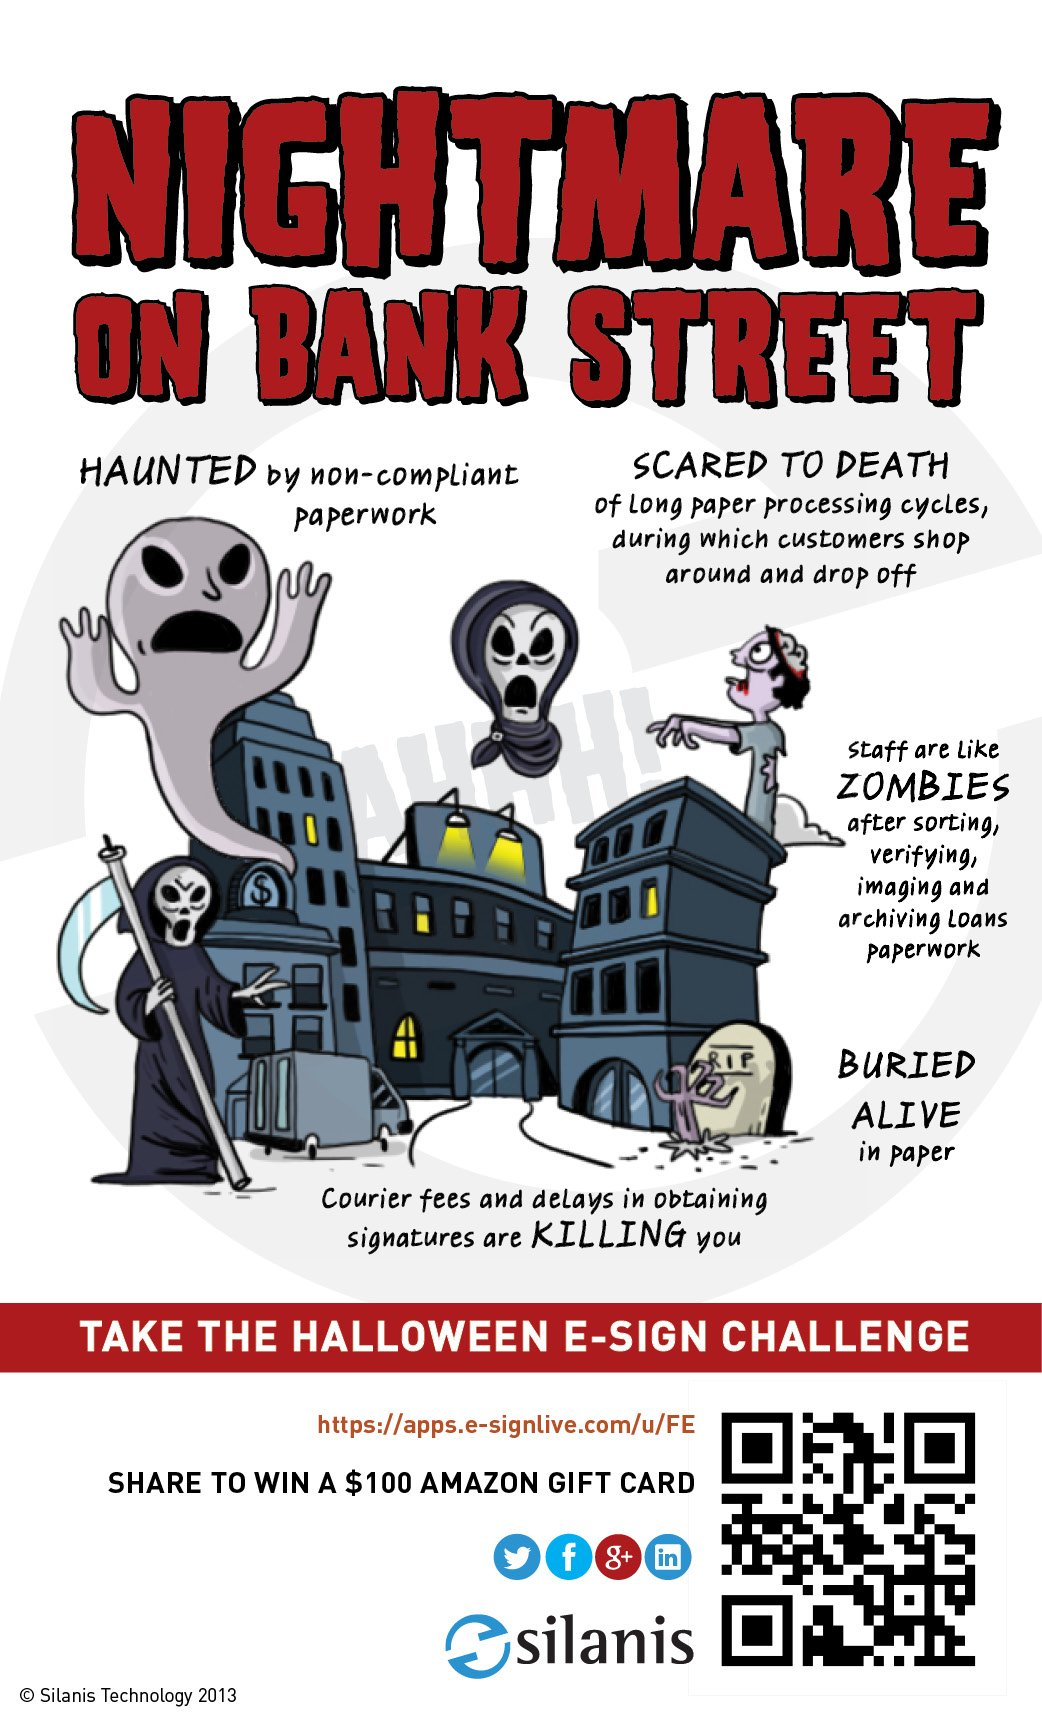 end the nightmare on bank street – take the halloween e-sign